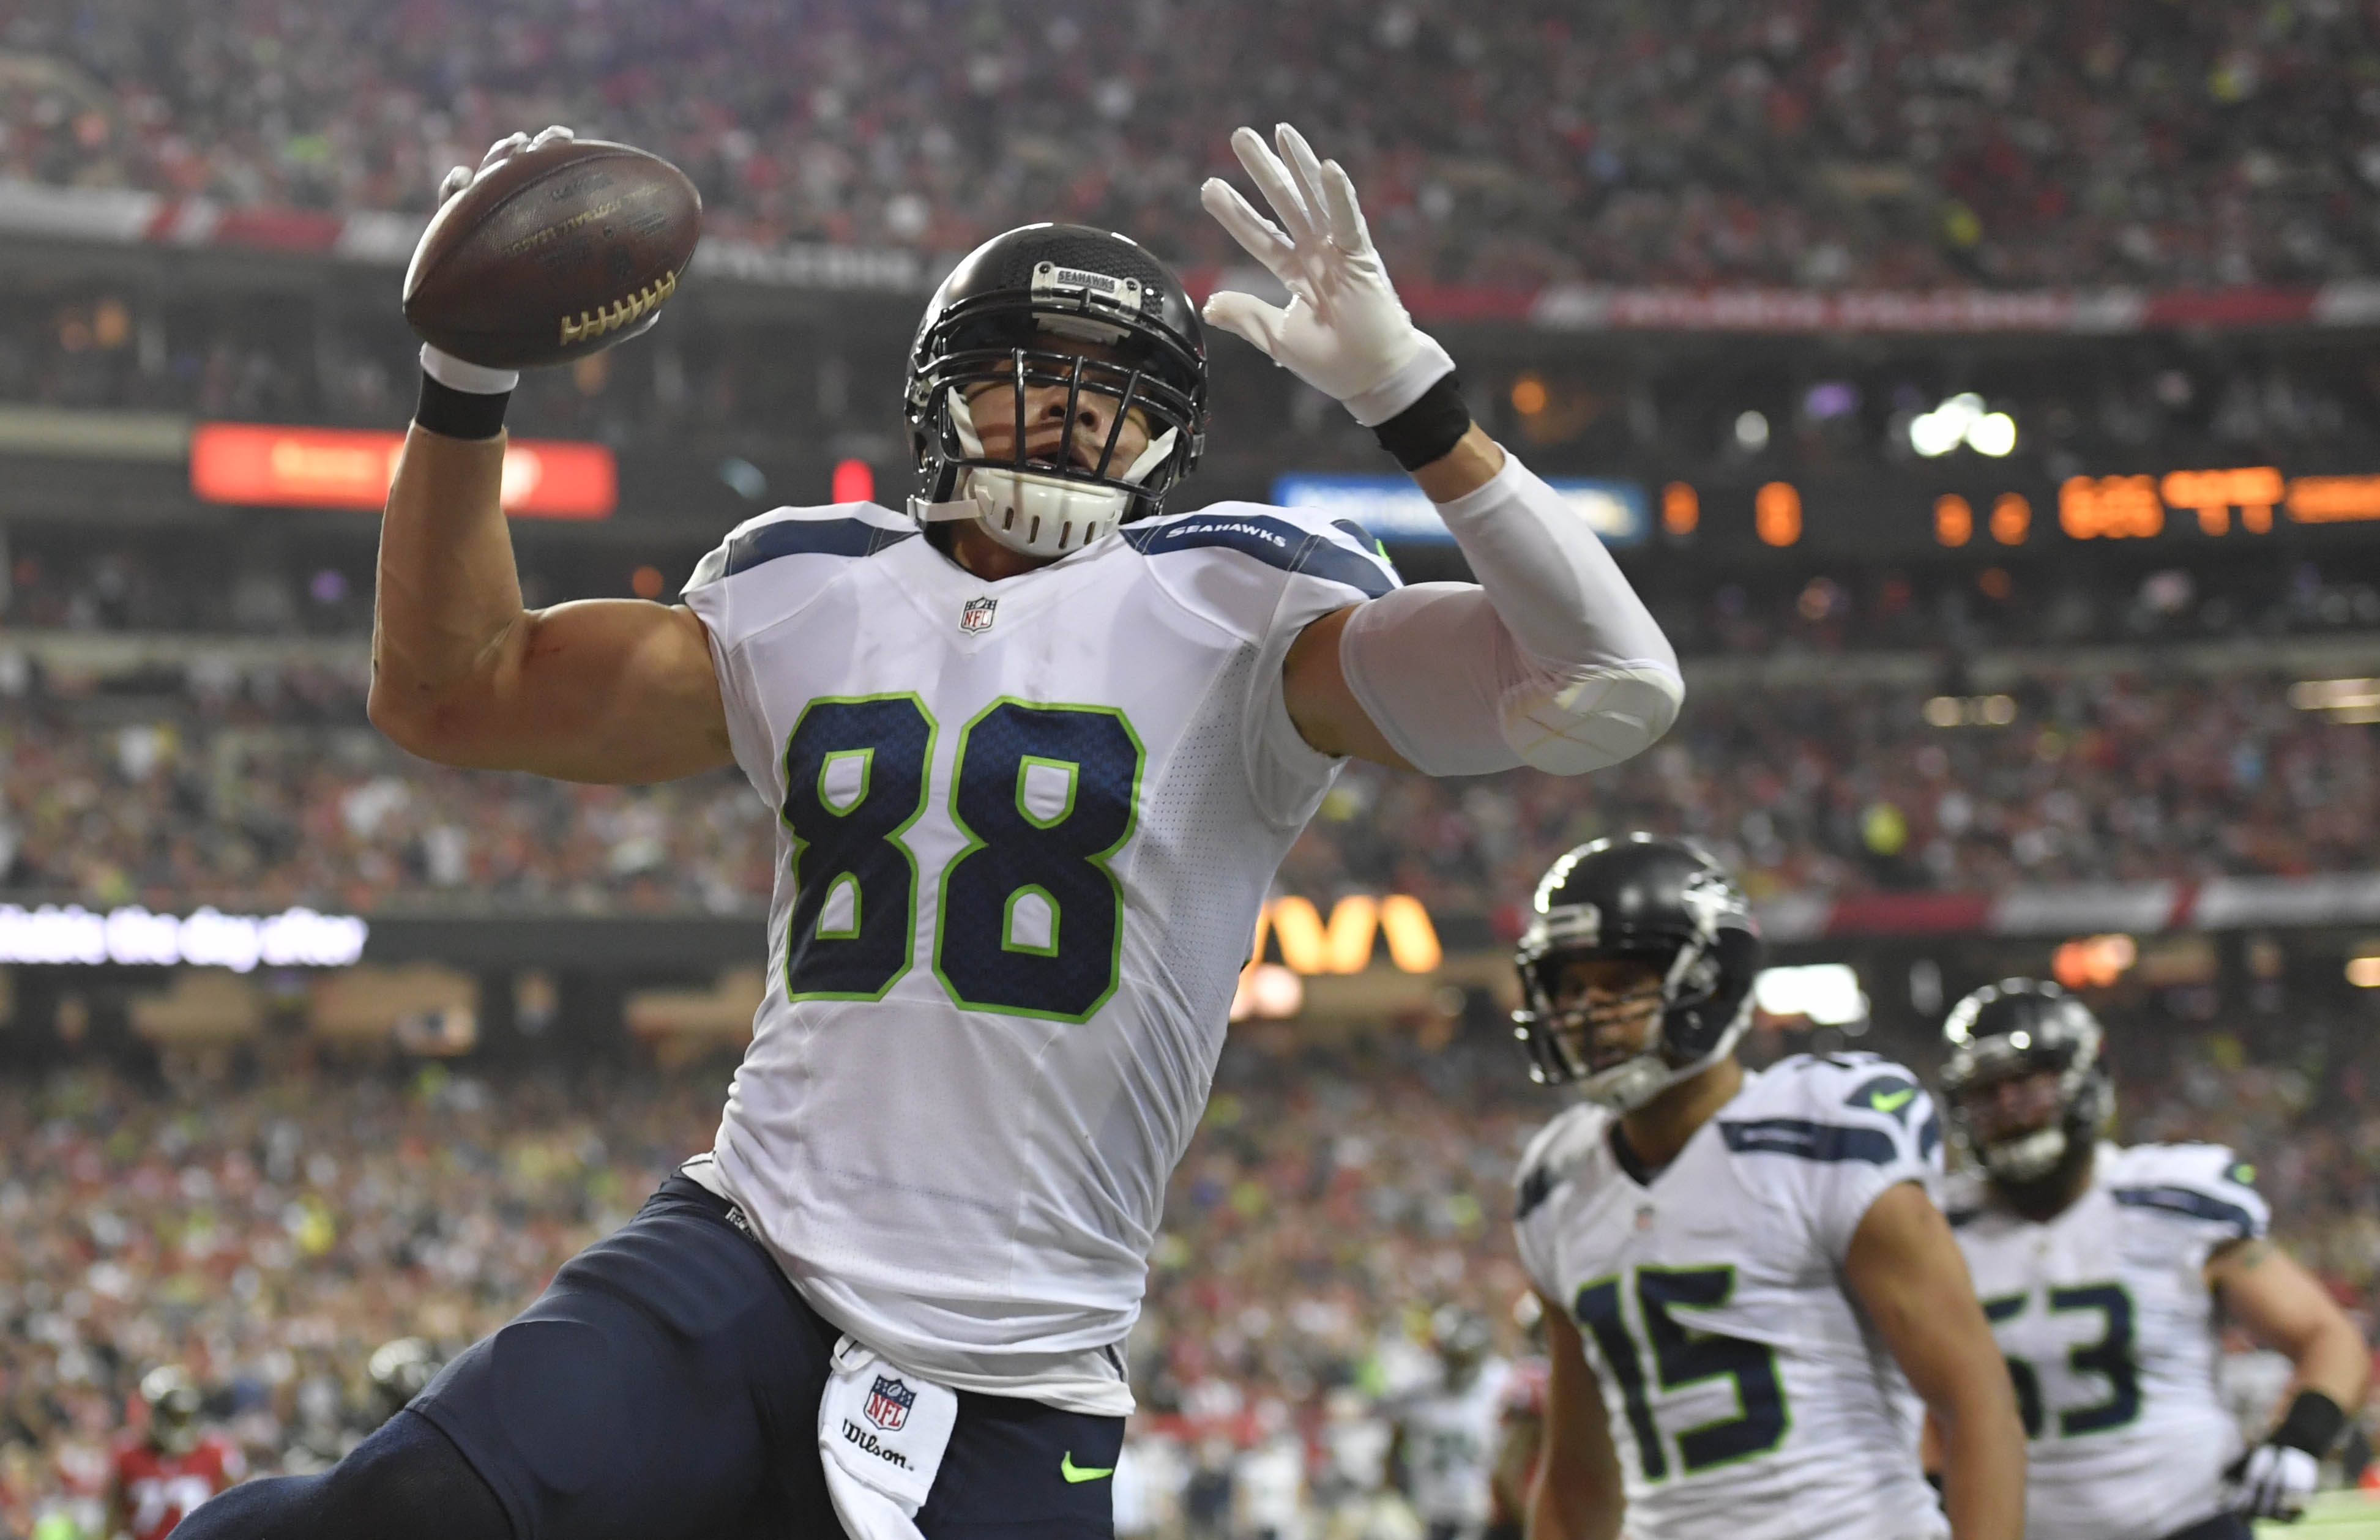 the seattle seahawks the best team in the nfc The latest seattle seahawks nfl news articles from cliff avril goes down as one of the best seahawks ever khalid hill will make the team for his short and.